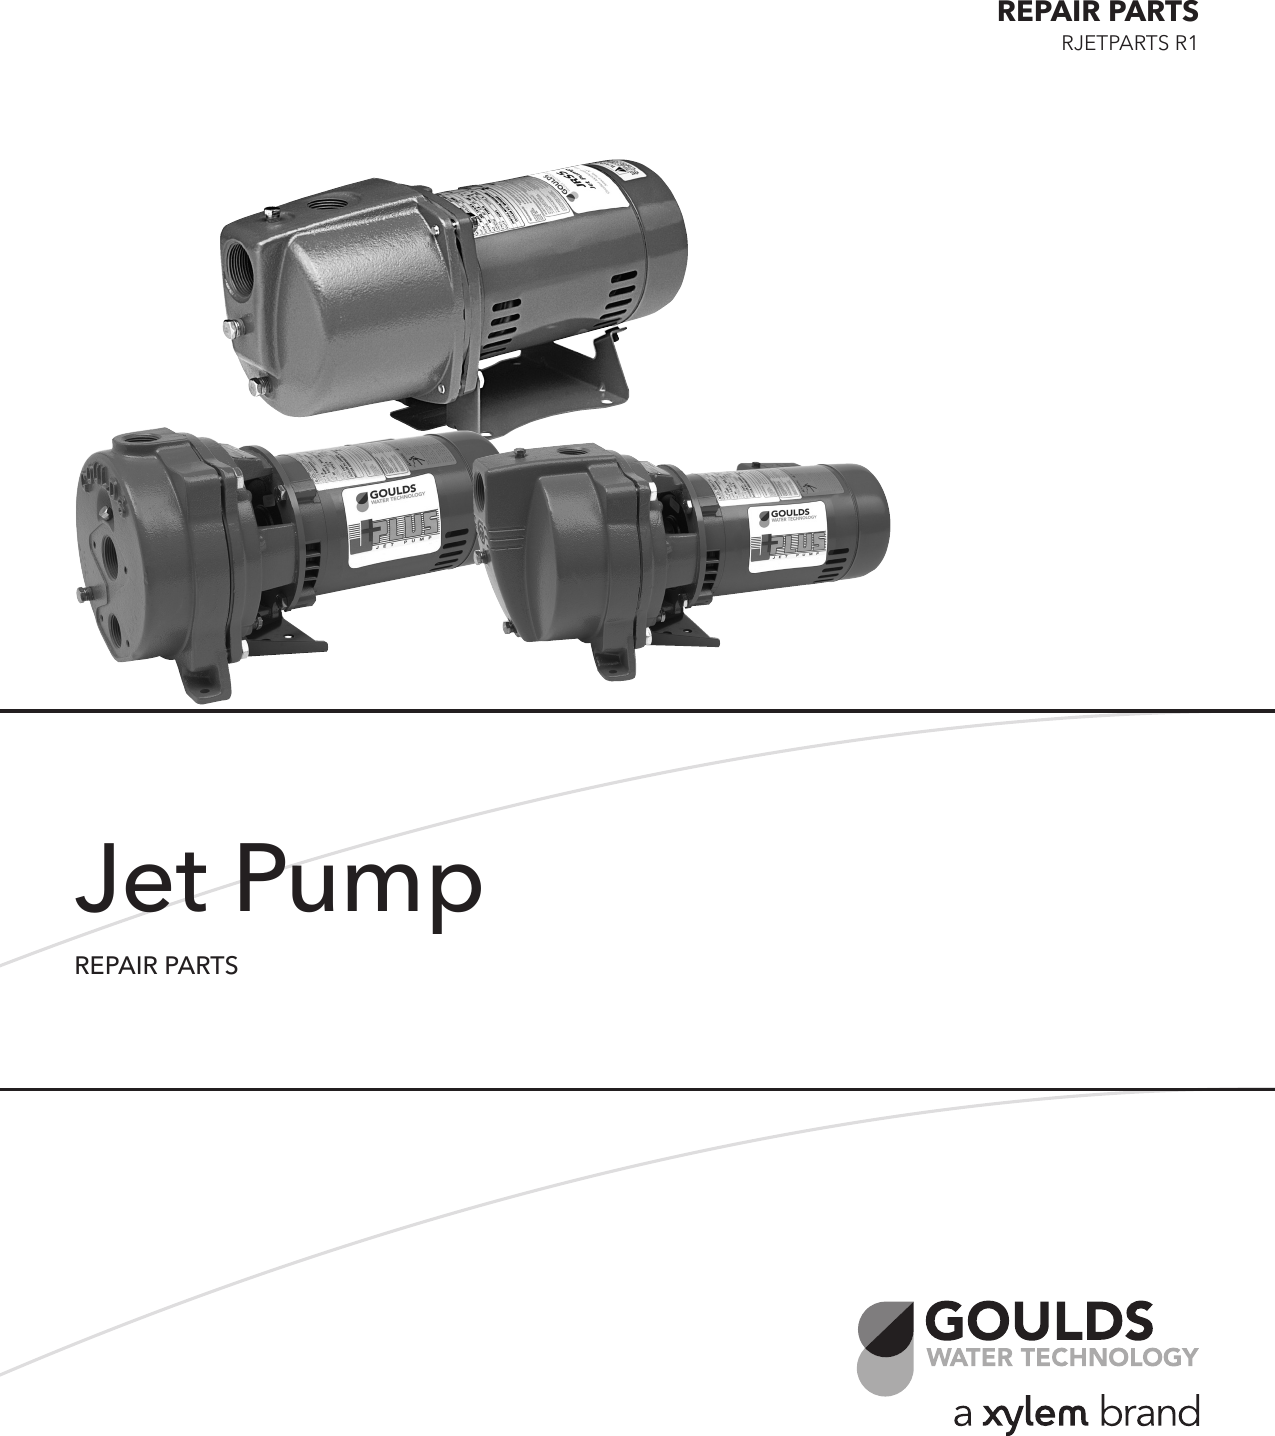 538690 3 Goulds Jet Pump Repair Parts